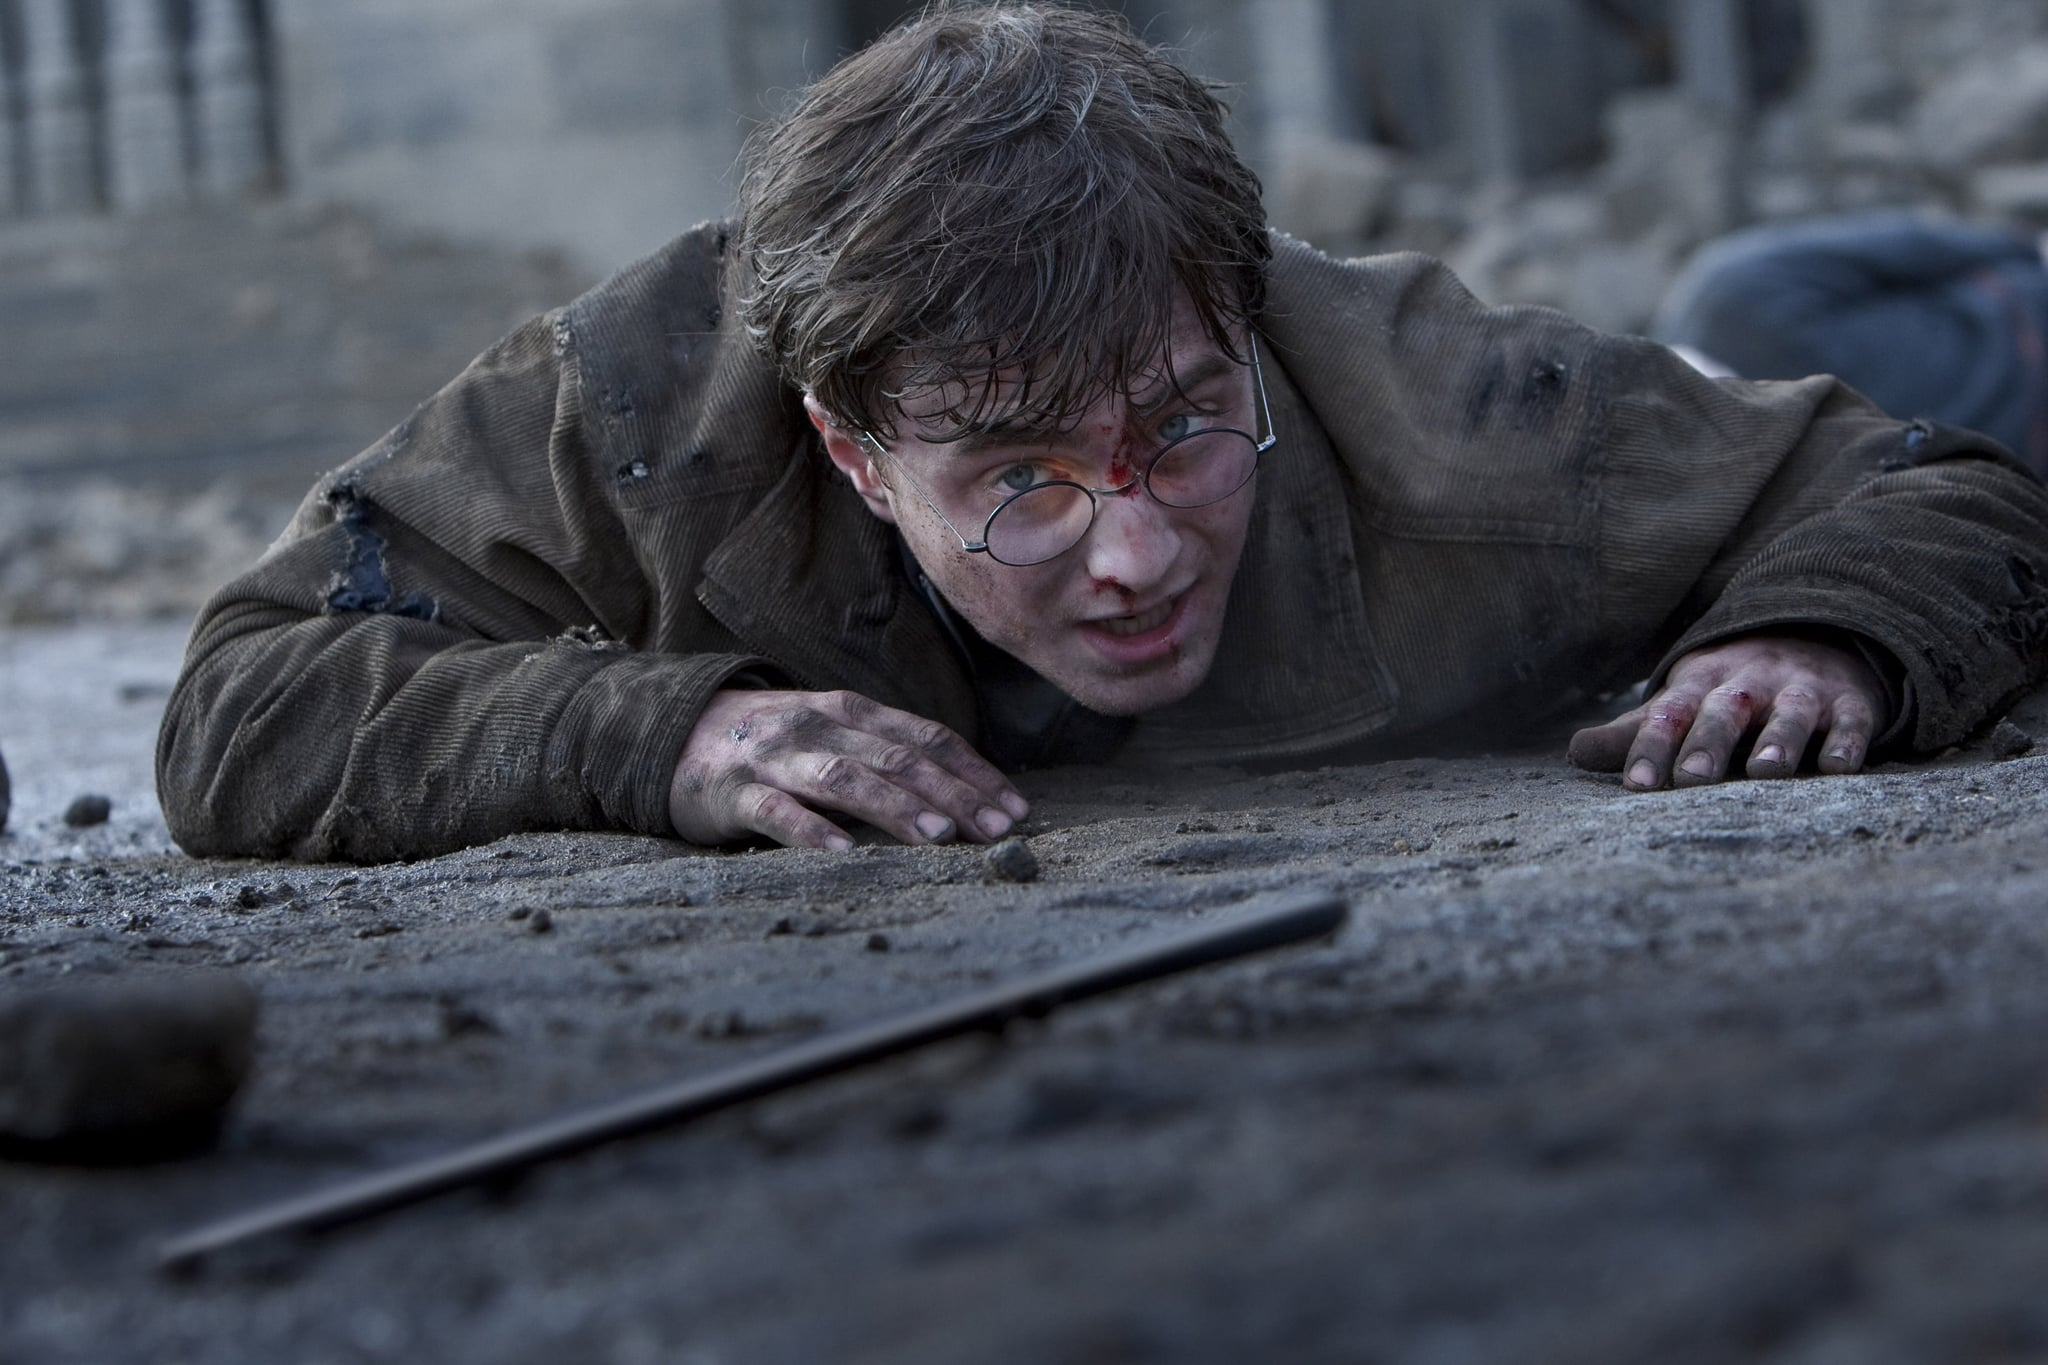 HARRY POTTER AND THE DEATHLY HALLOWS: PART 2, Daniel Radcliffe, 2011. ph: Jaap Buitendijk/2011 Warner Bros. Ent. Harry Potter publishing rights J.K.R. Harry Potter characters, names and related indicia are trademarks of and Warner Bros. Ent. All rights reserved./Courtesy Everett Collection